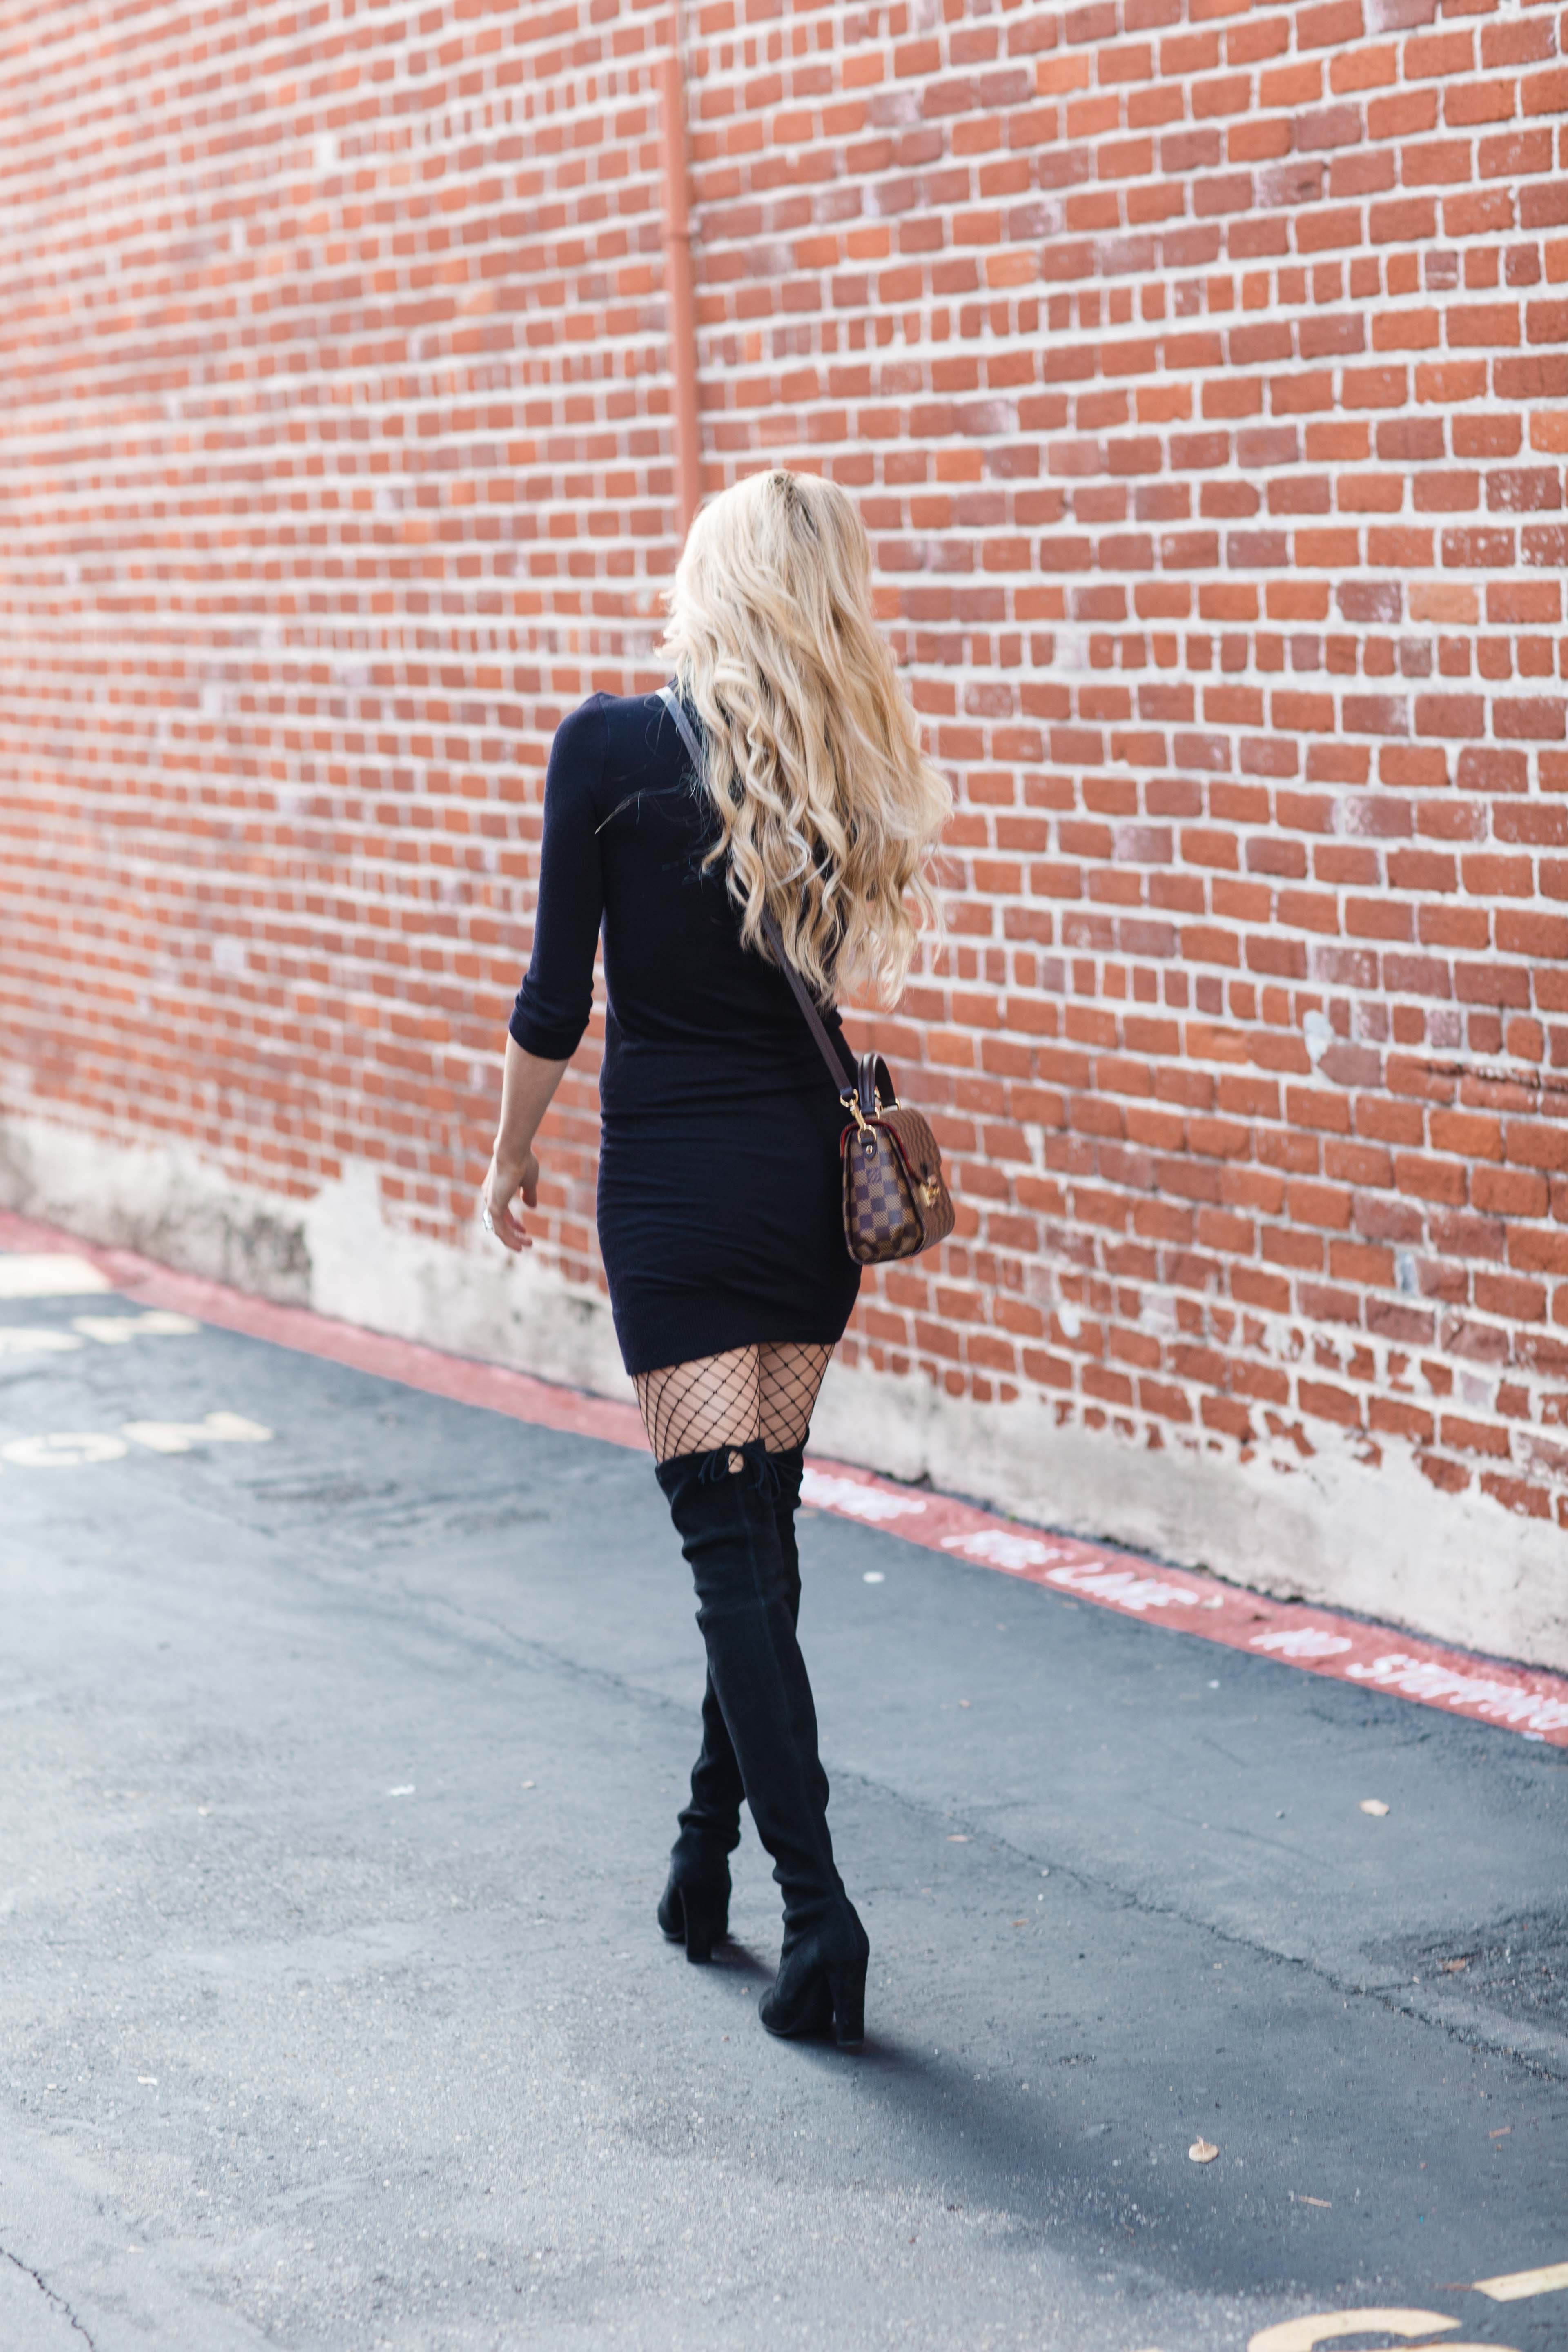 Black Dress Fishnet Tights Over Knee Boots